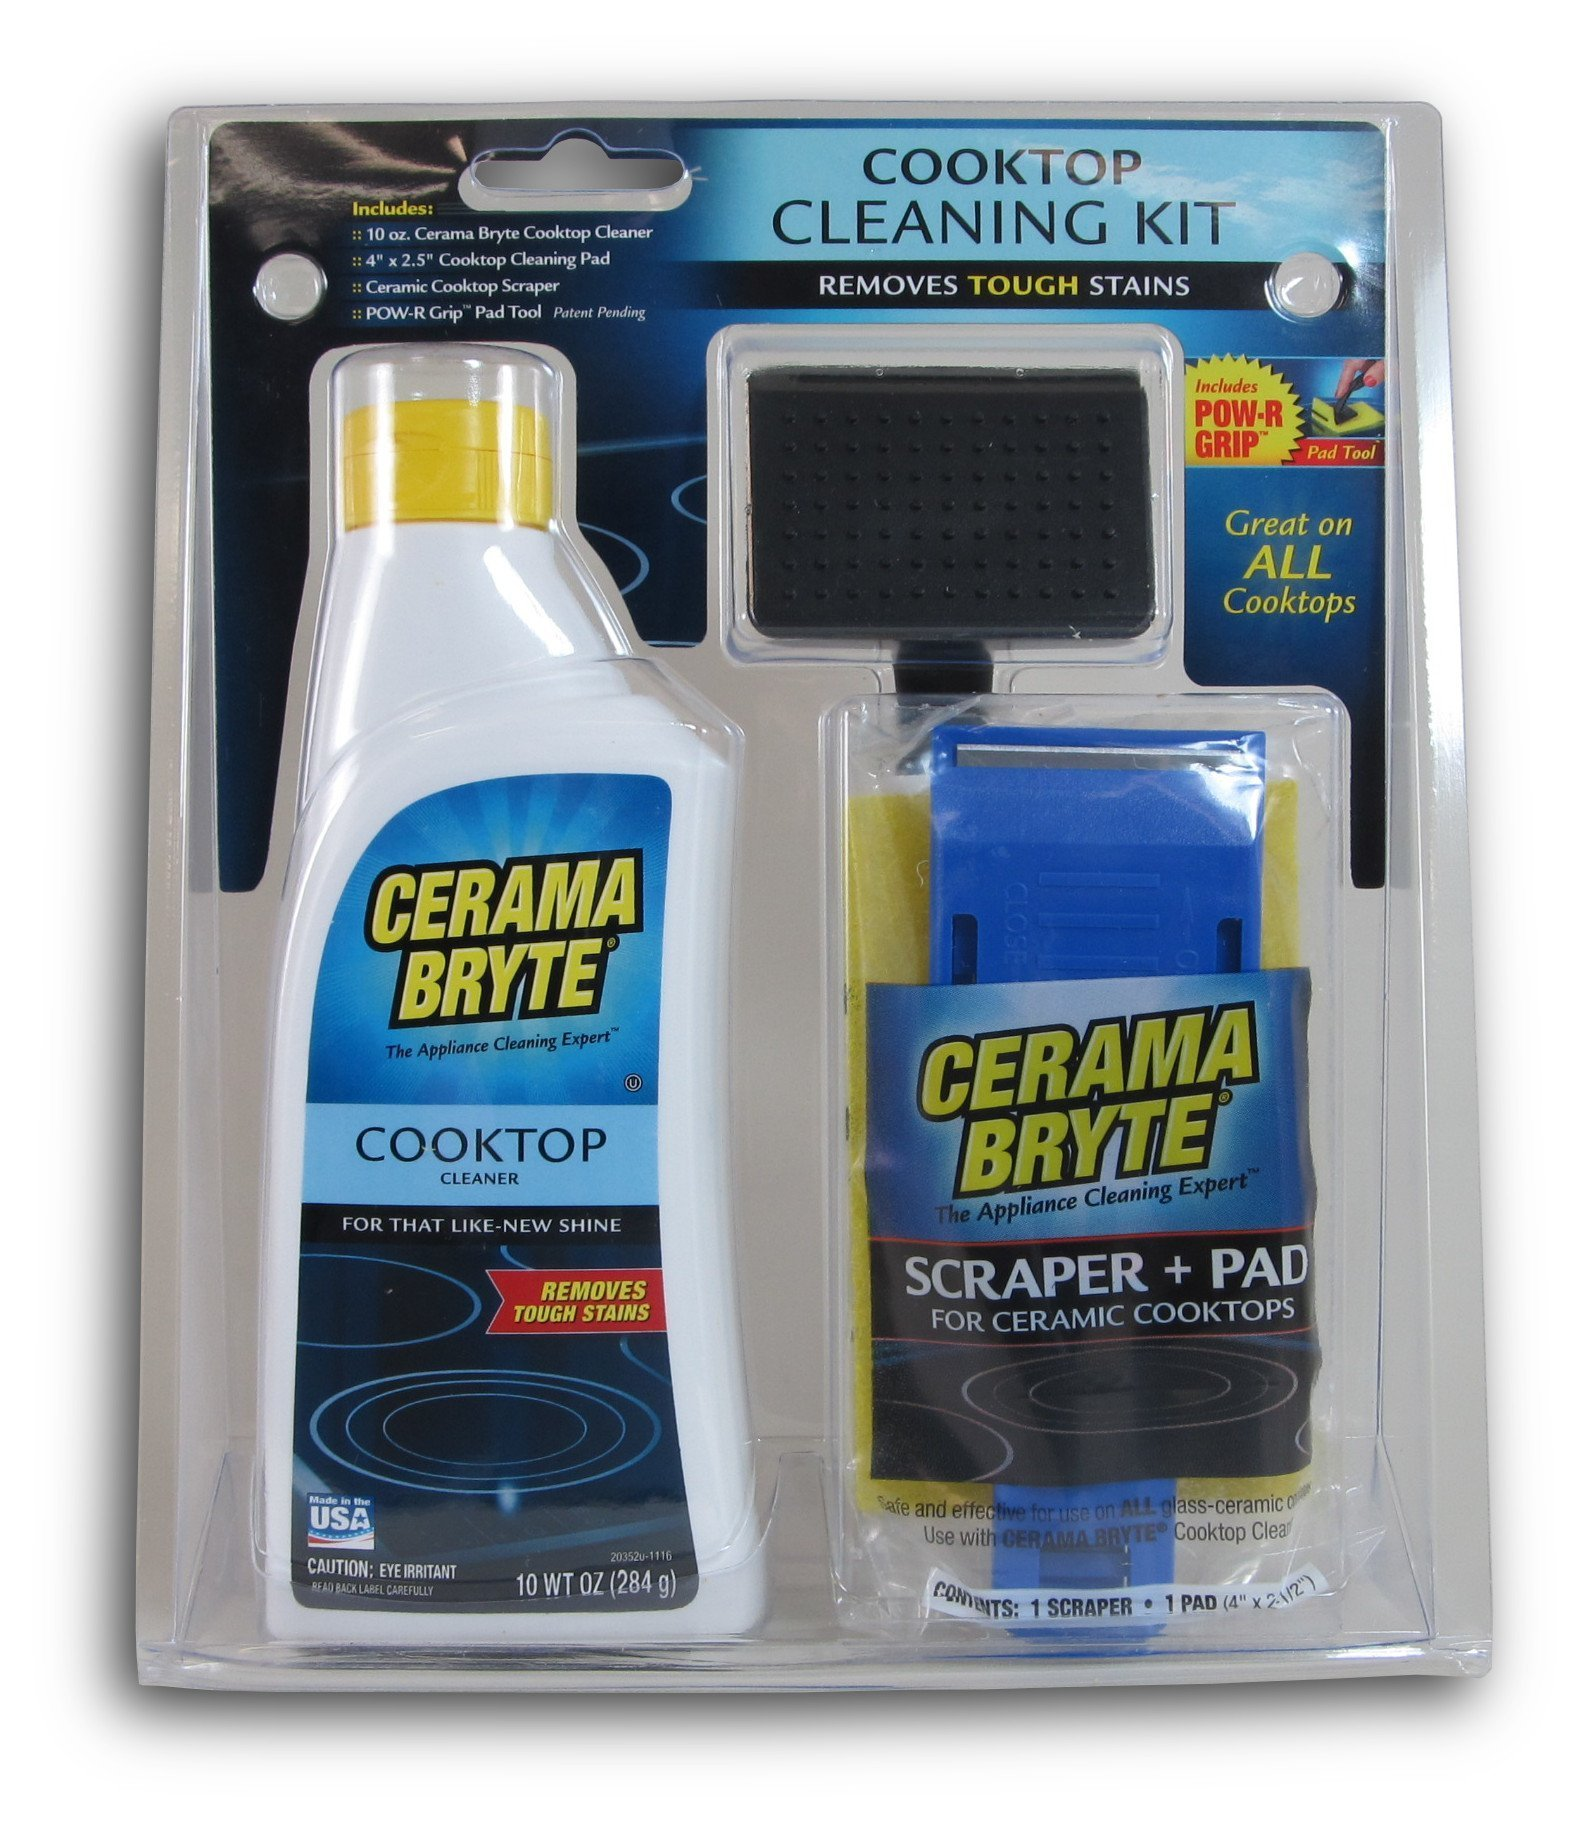 Cerama Bryte Cooktop Cleaning Cleaner